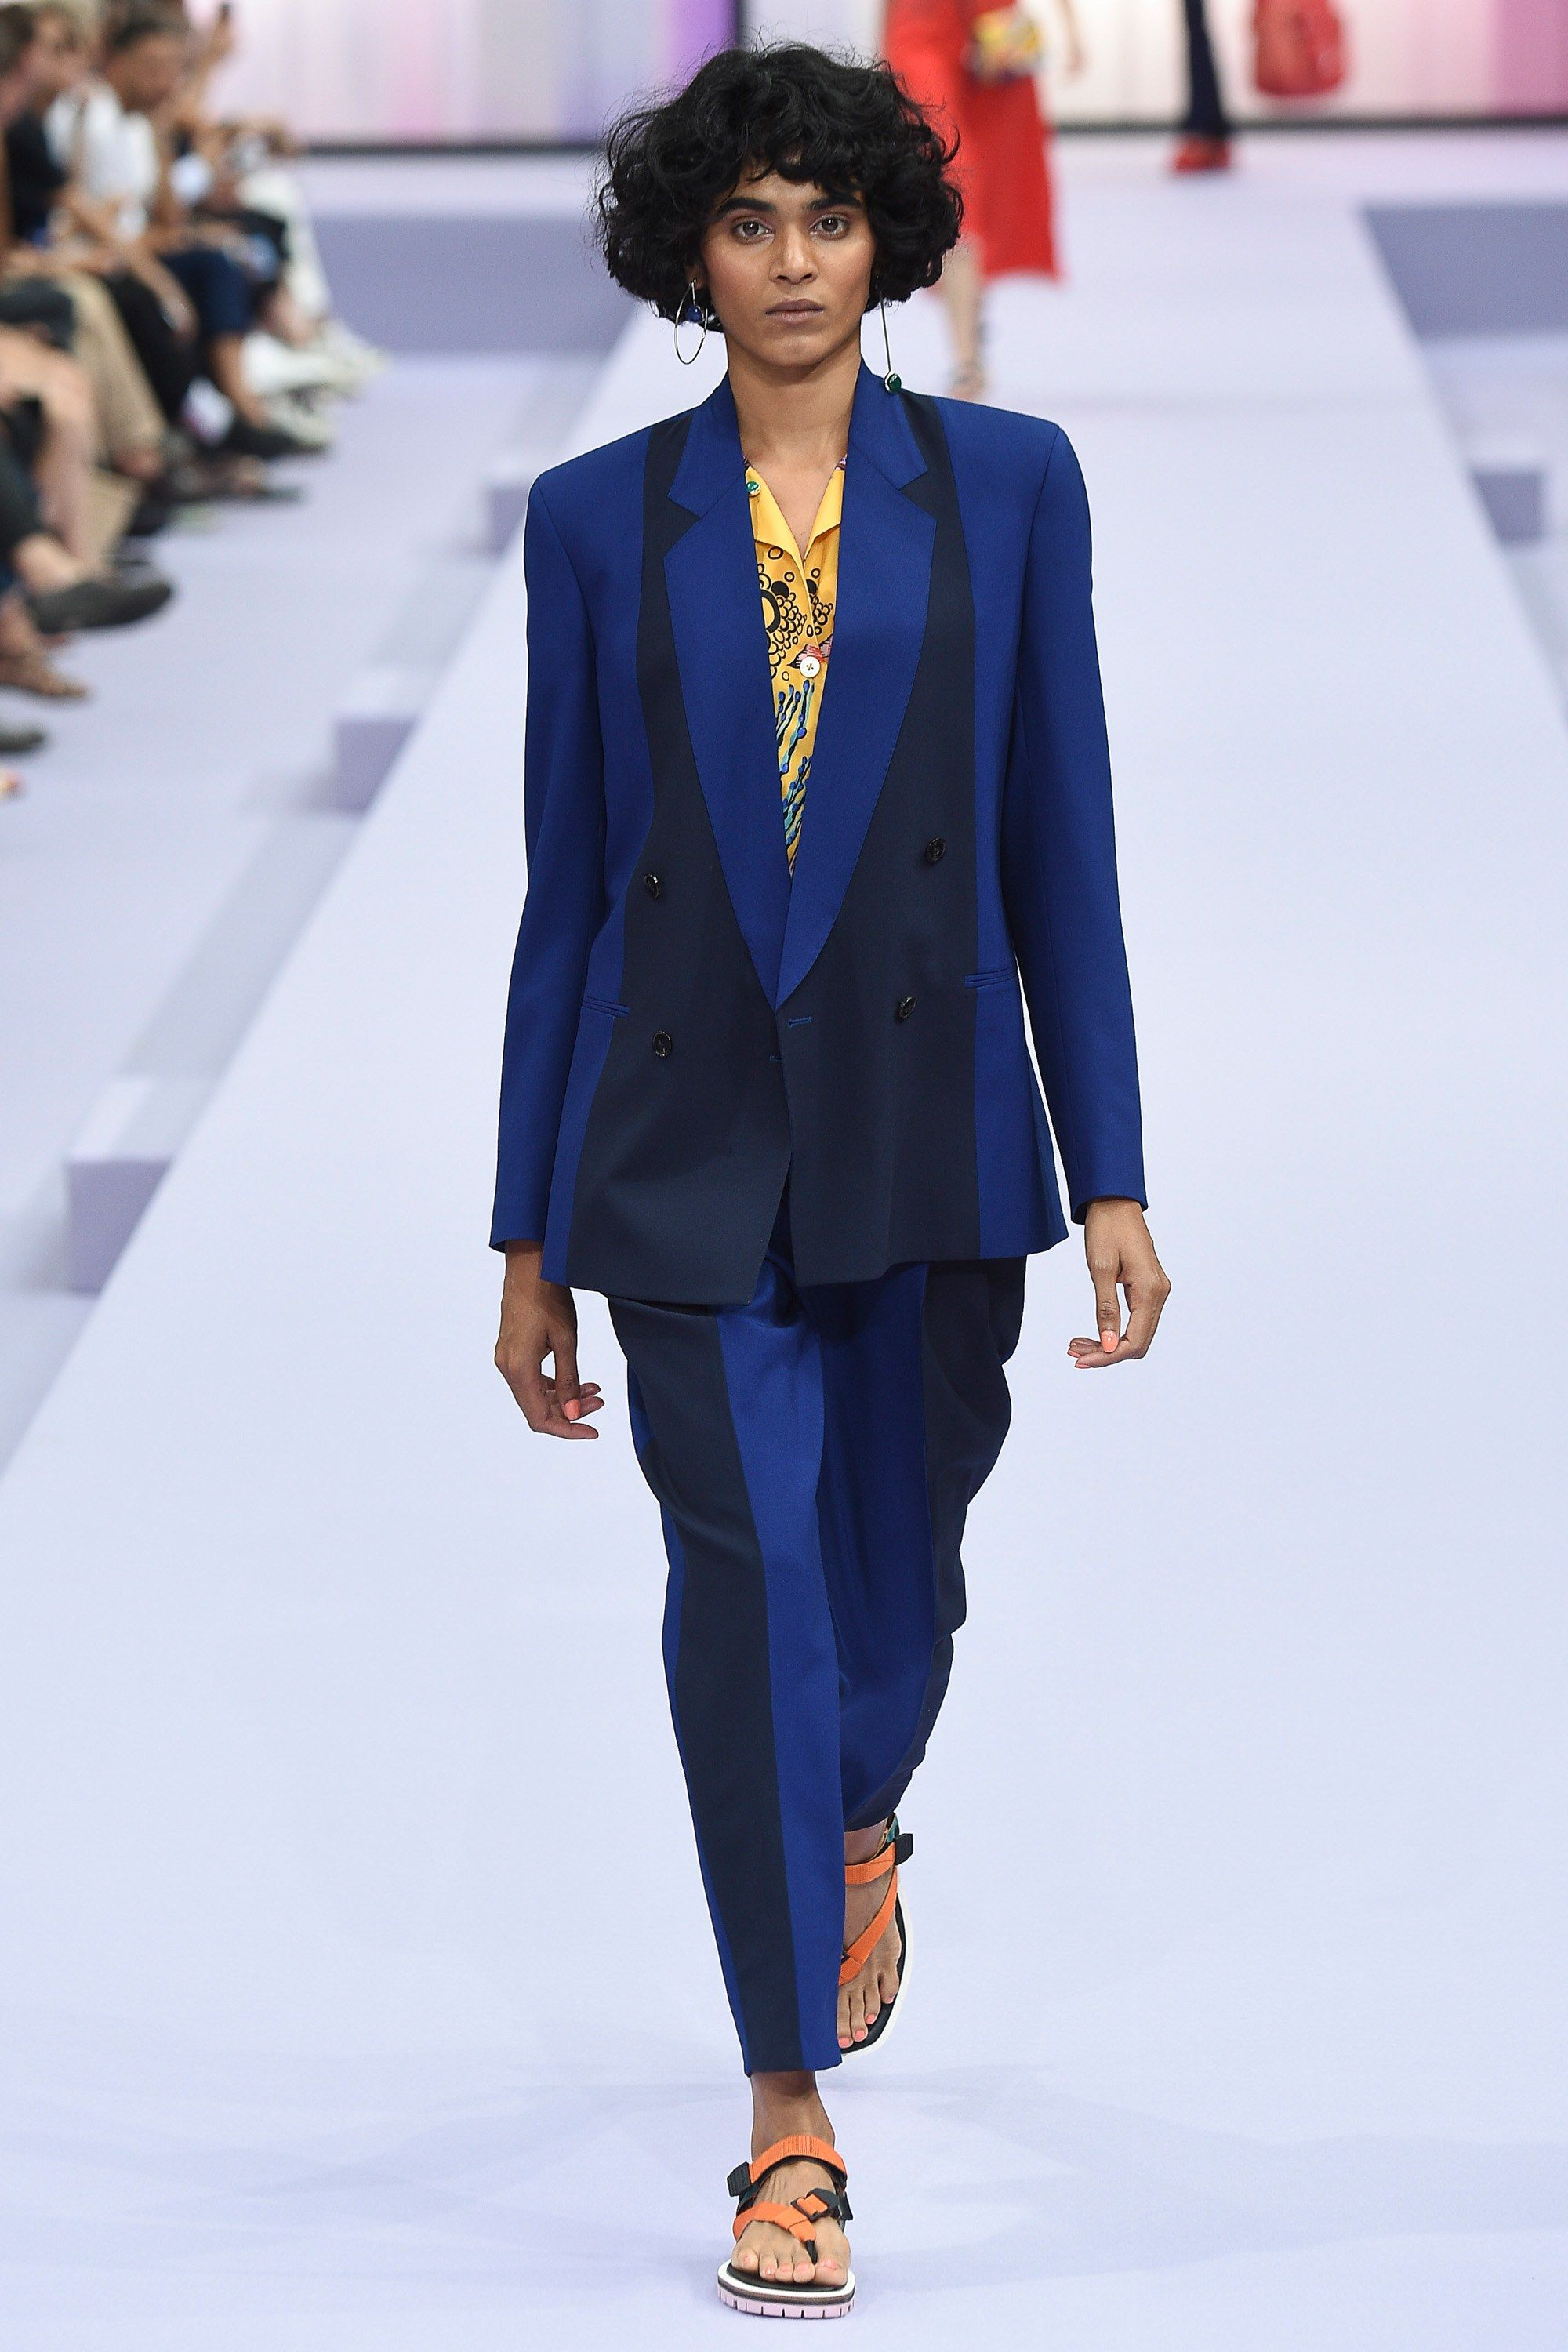 Paul Smith Spring 2018 Ready-to-Wear Collection Photos - Vogue 68446d8a483